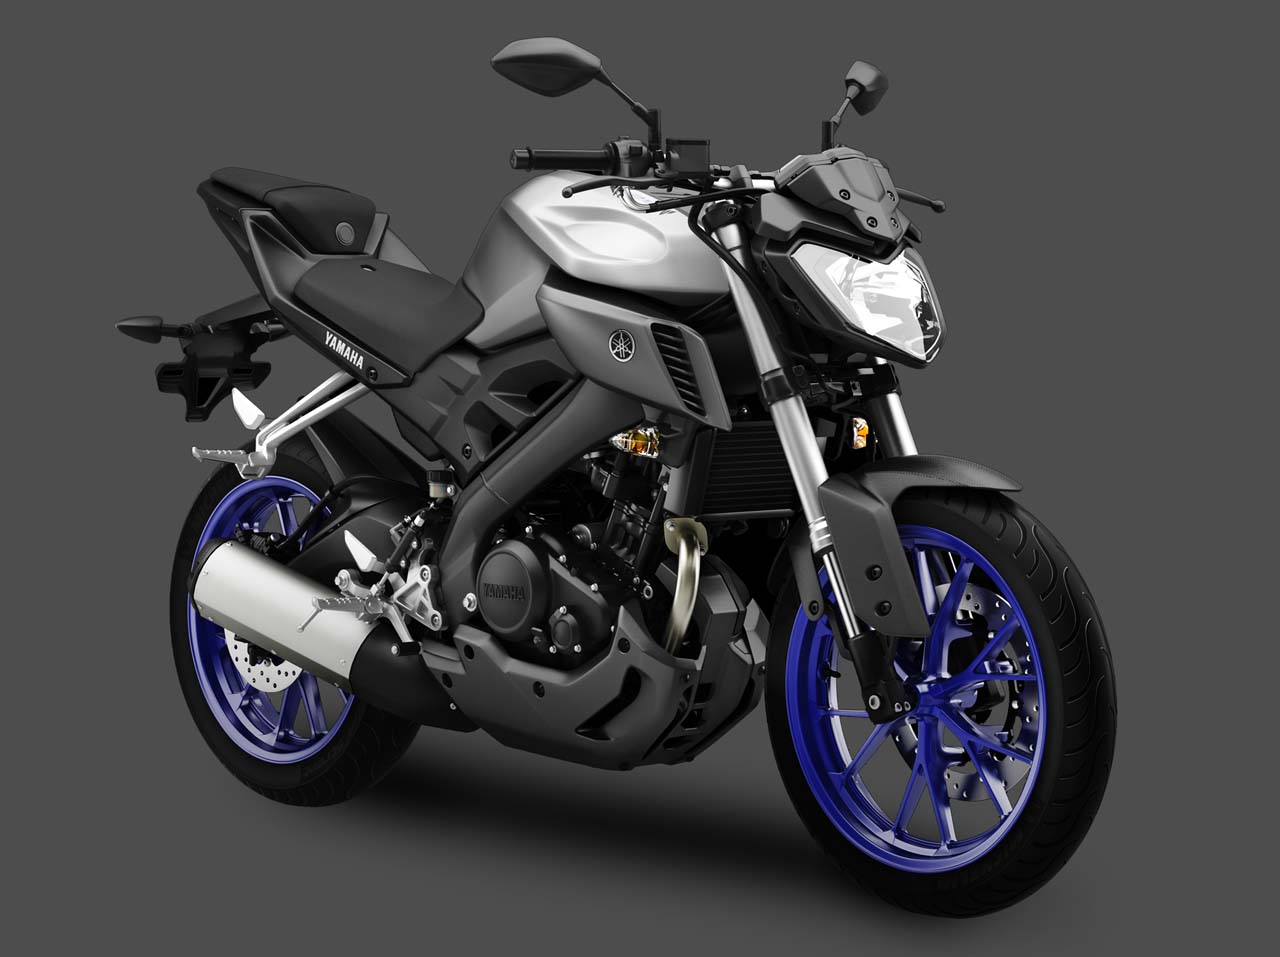 nouveau roadster yamaha mt 125 g n ral 125cm3 forum. Black Bedroom Furniture Sets. Home Design Ideas